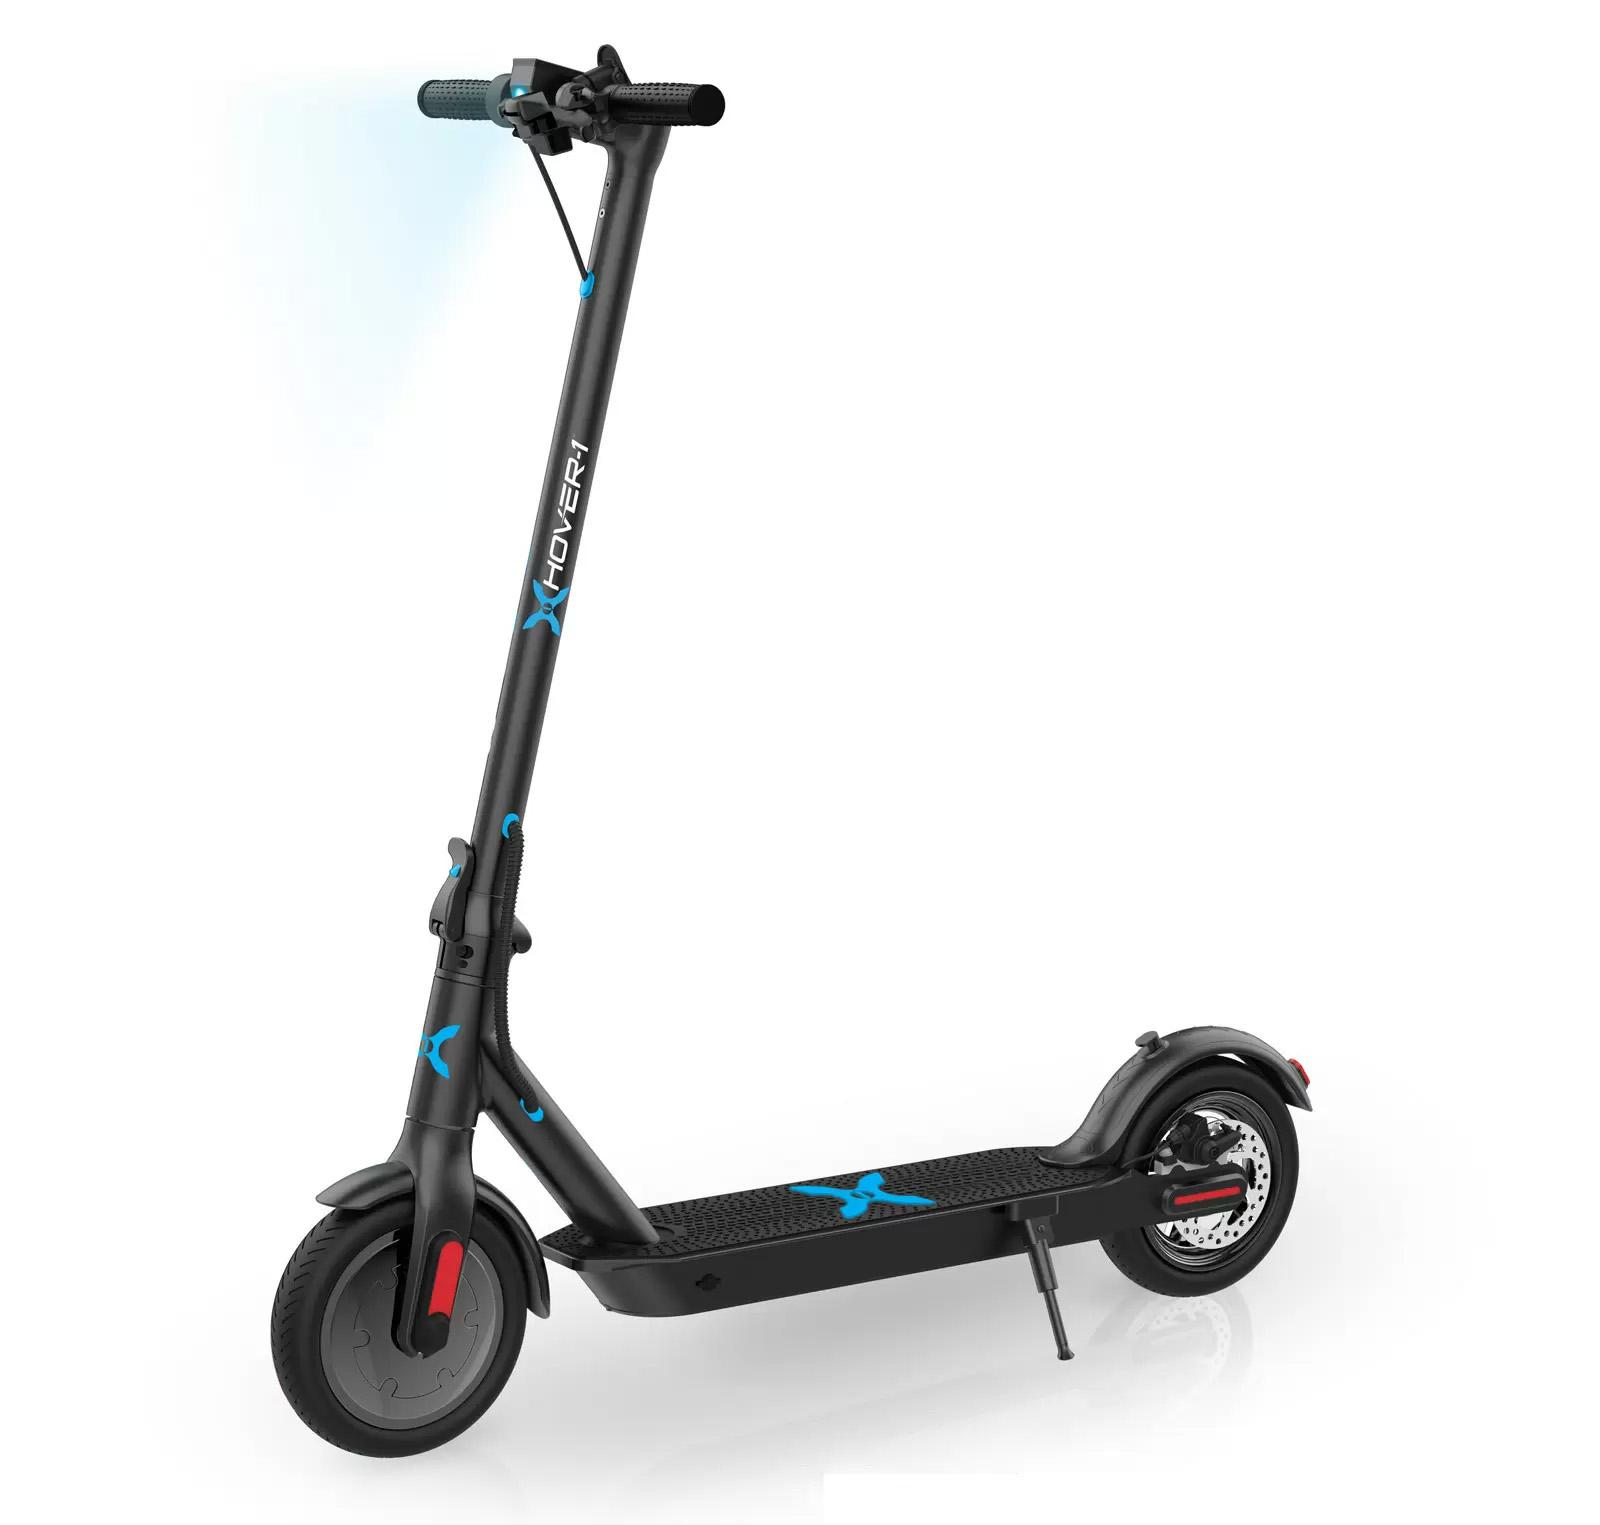 Hover-1 Pioneer Electric Folding Scooter for $148 Shipped